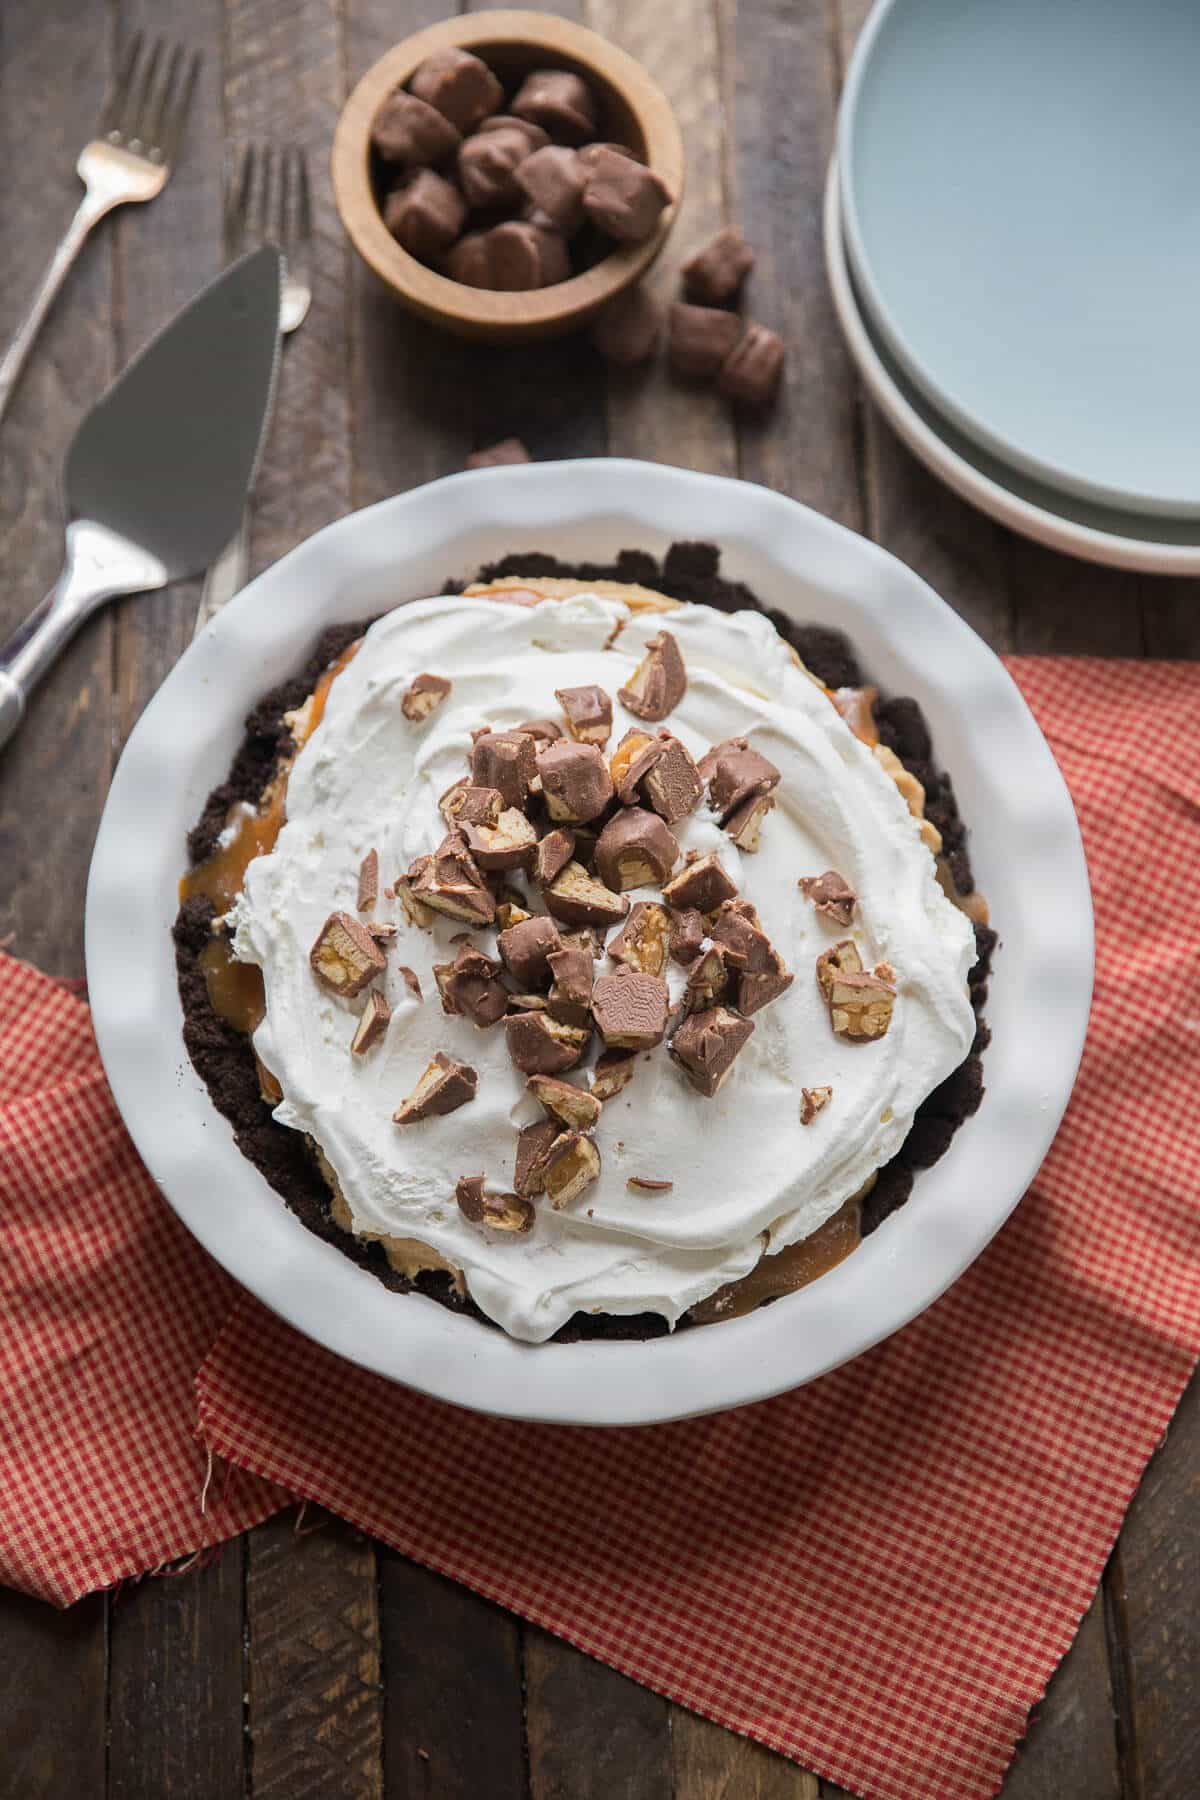 Peanut butter pie with caramel mixed in is a treat to behold! This recipe is a keeper!